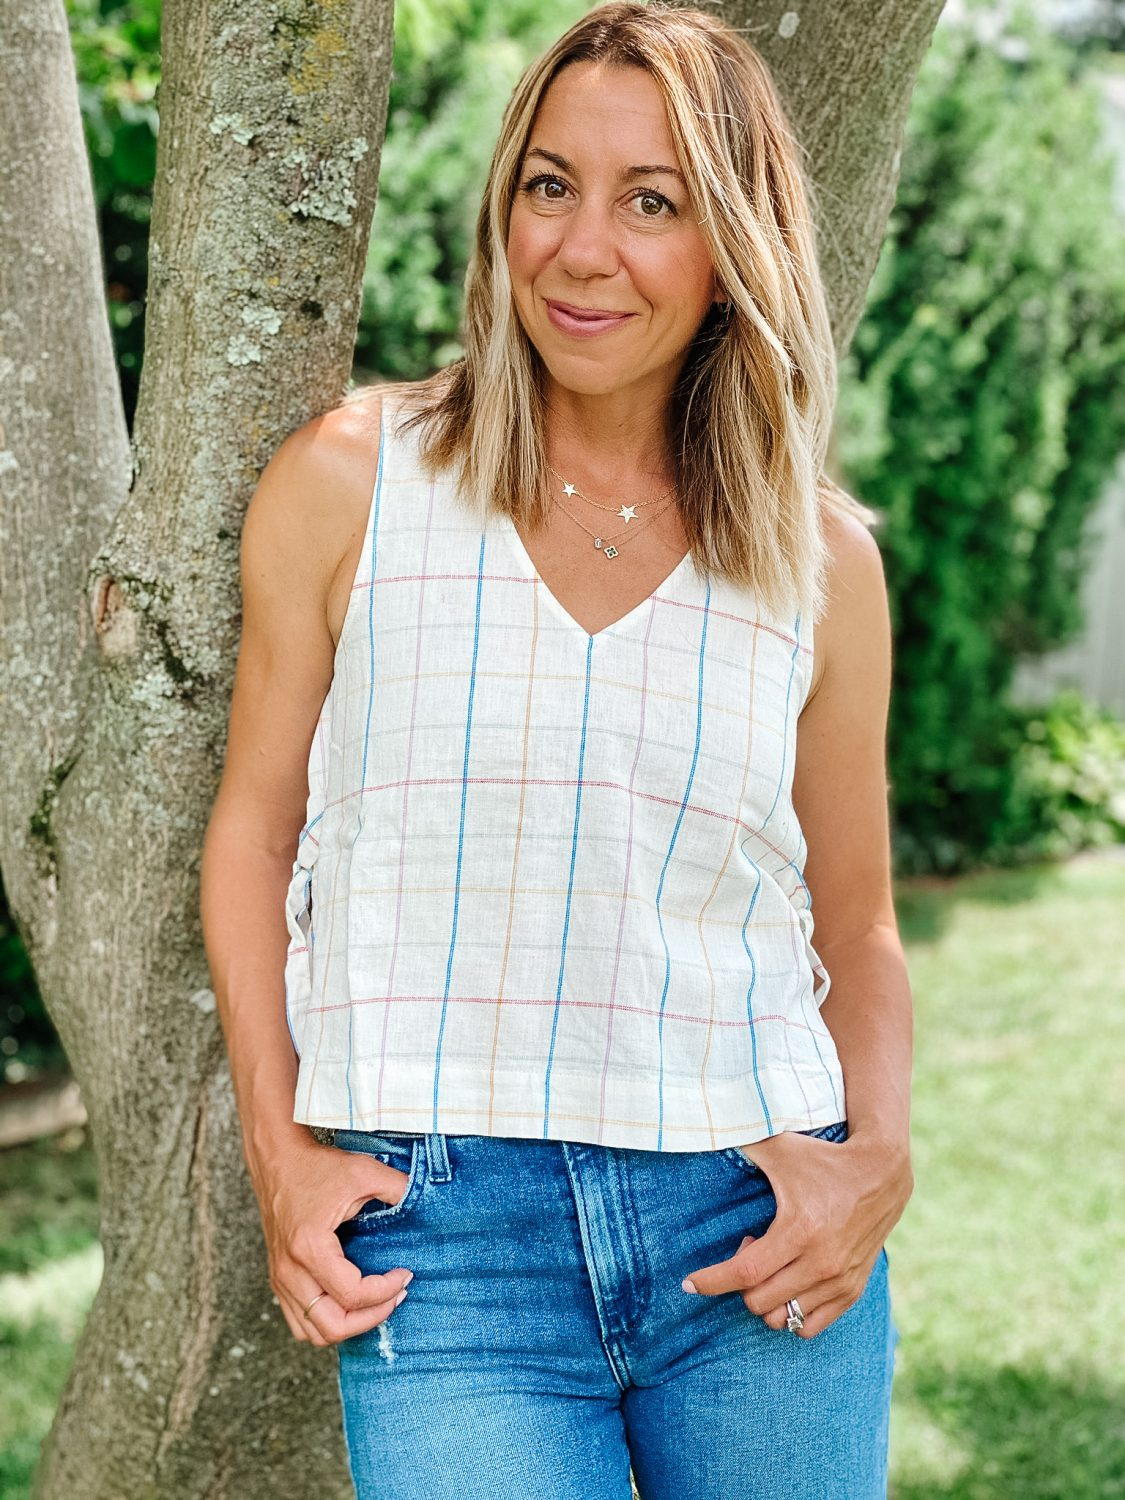 The Motherchic Madewell summer tops from Nordstrom